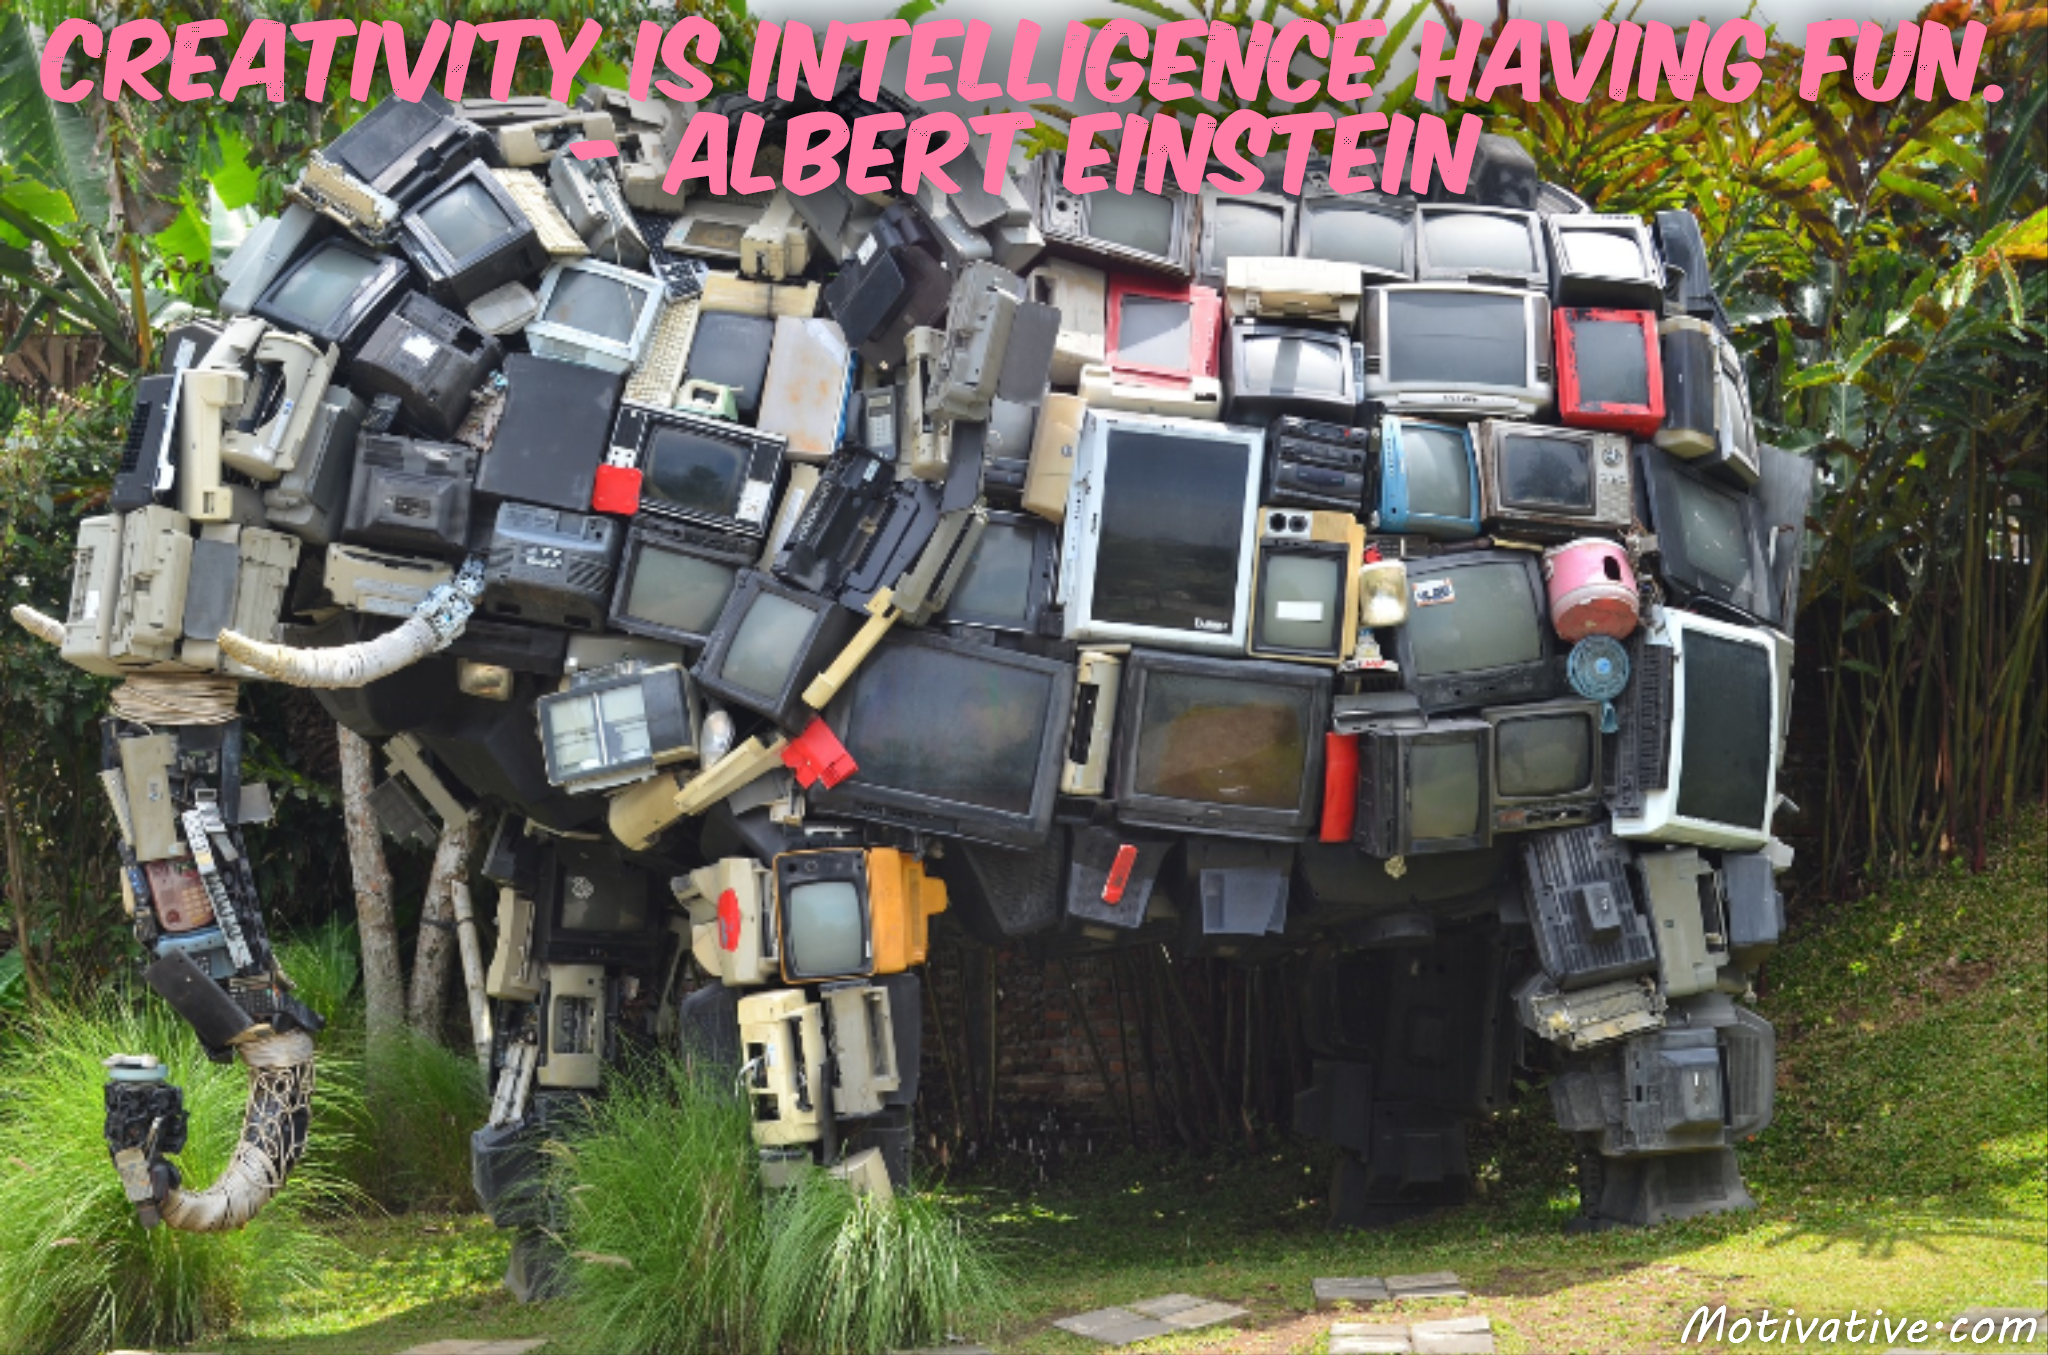 Creativity is intelligence having fun. – Albert Einstein